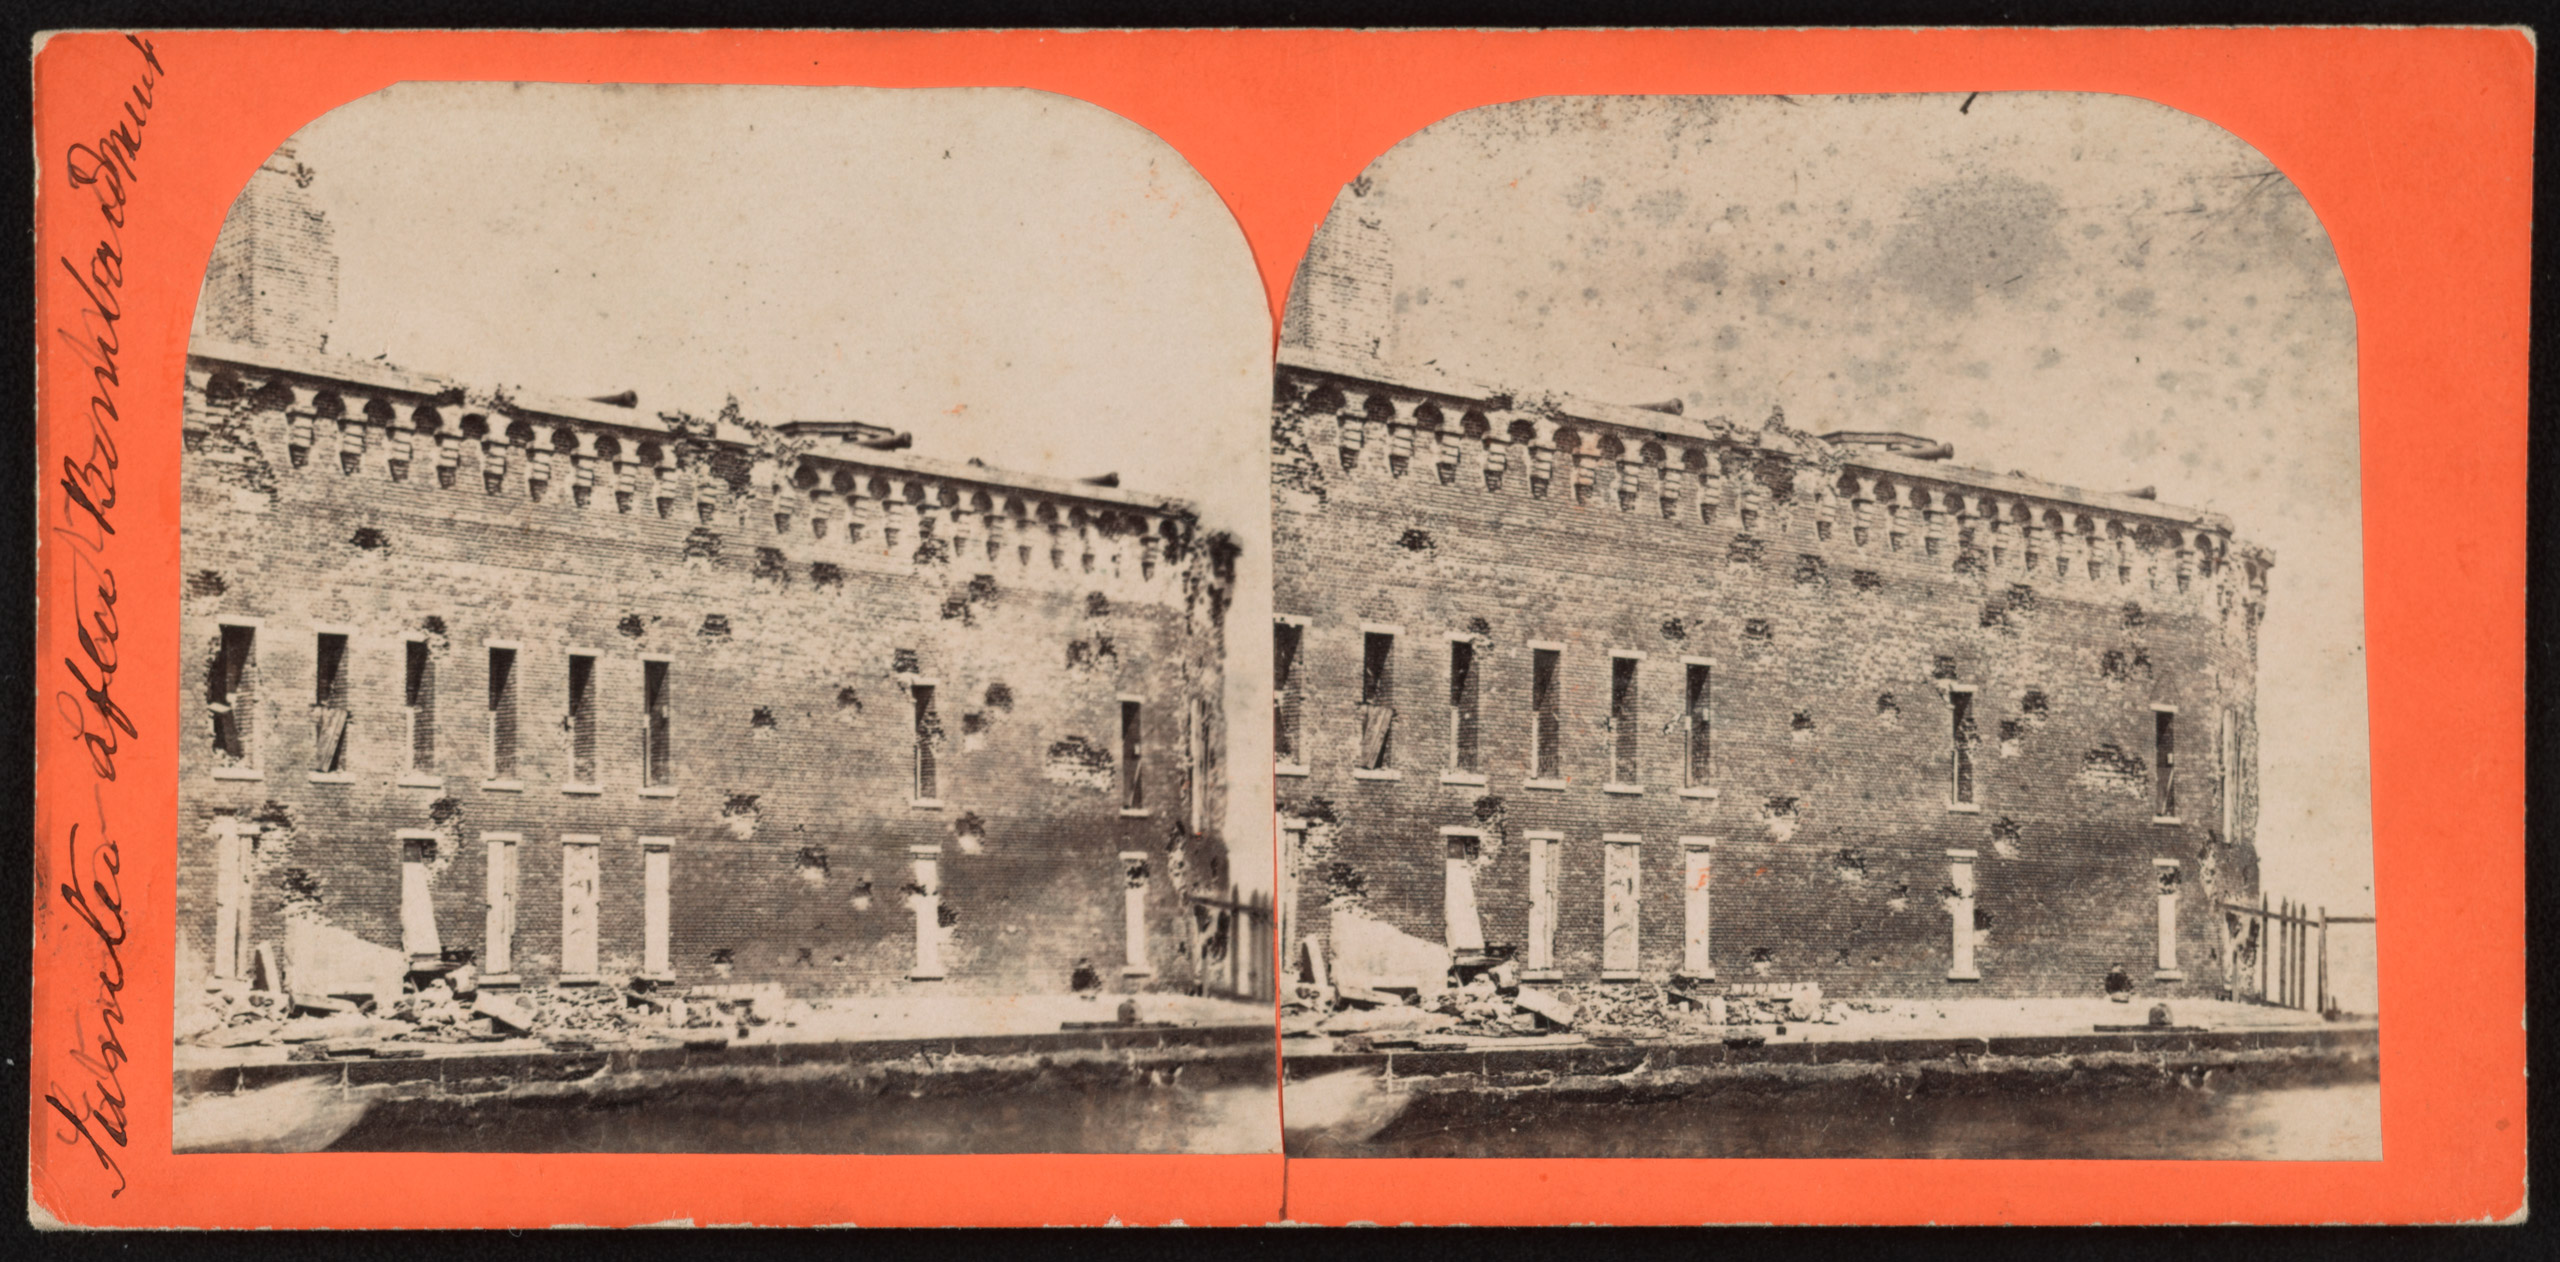 Sumter after bombardment. Stereograph from The Robin G. Stanford Collection.